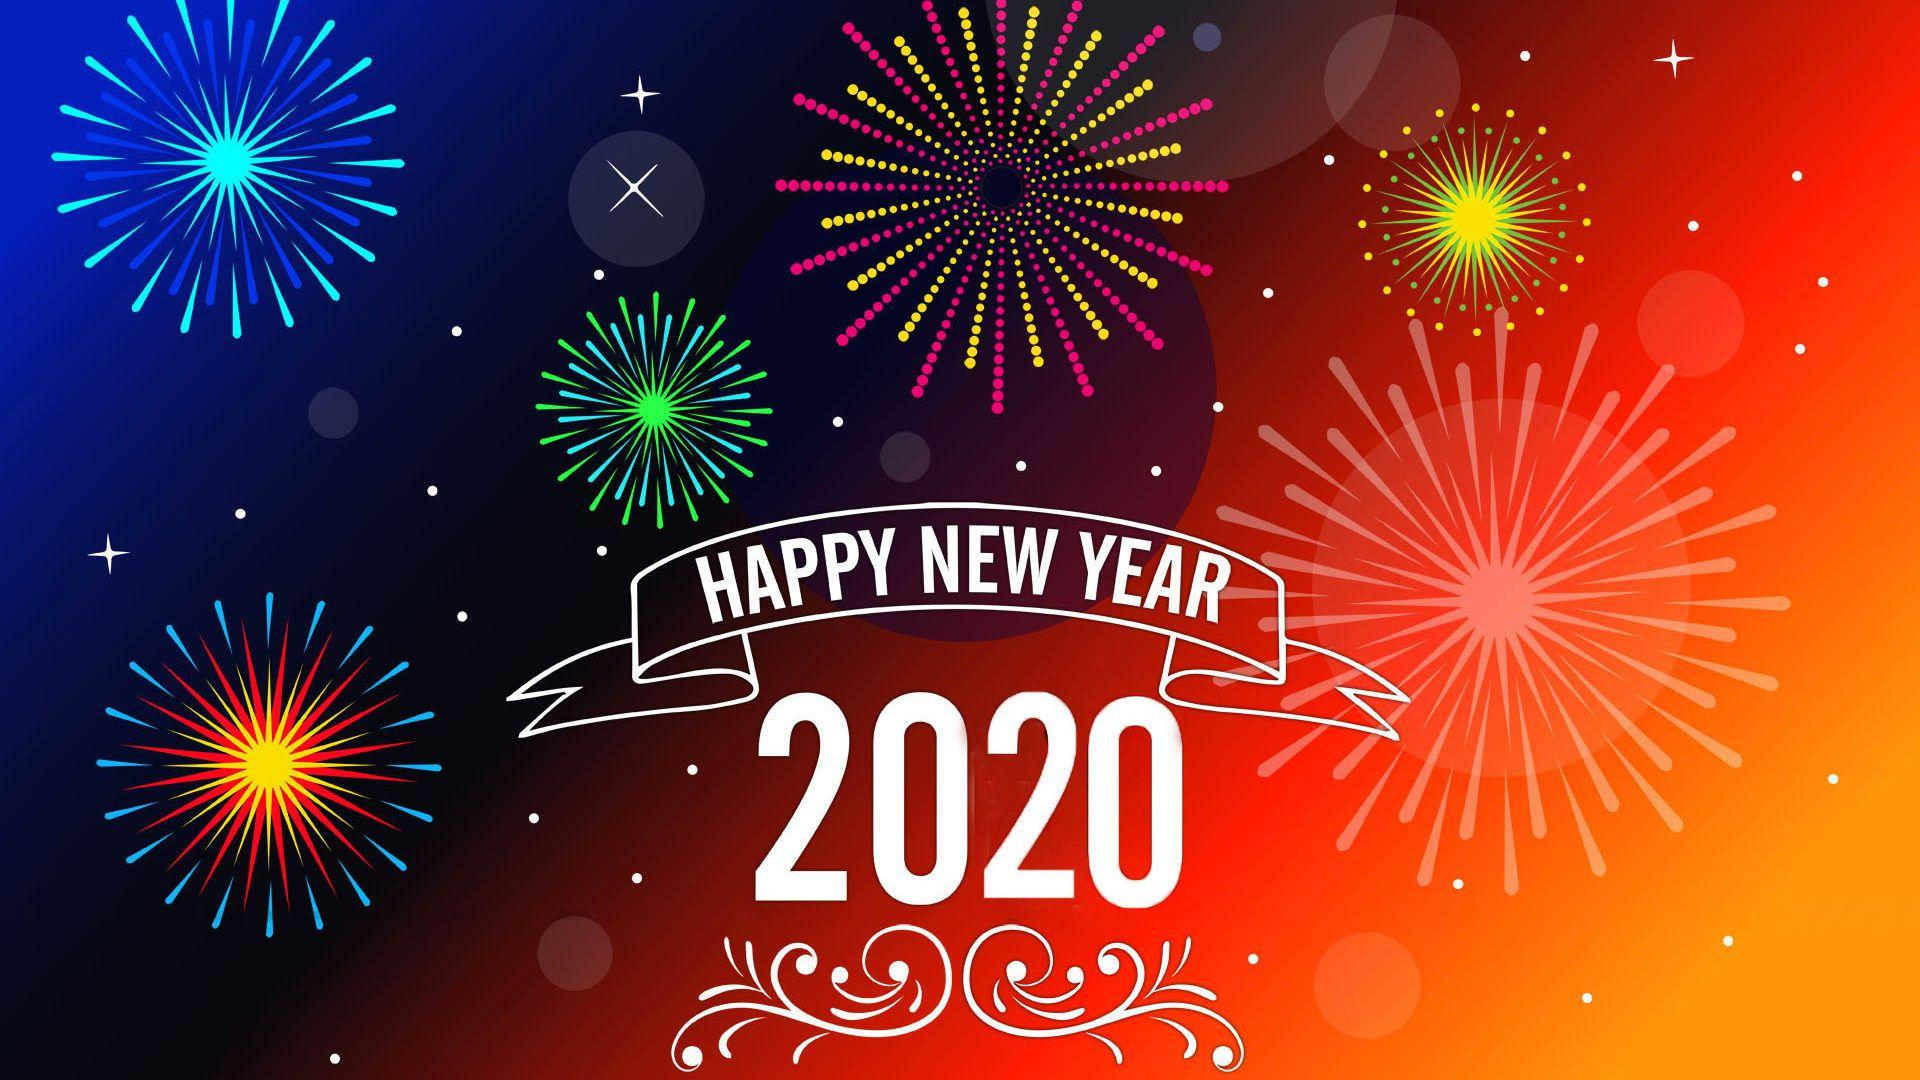 Happy New Year 2020 Hd Wallpapers - Wallpaper Cave